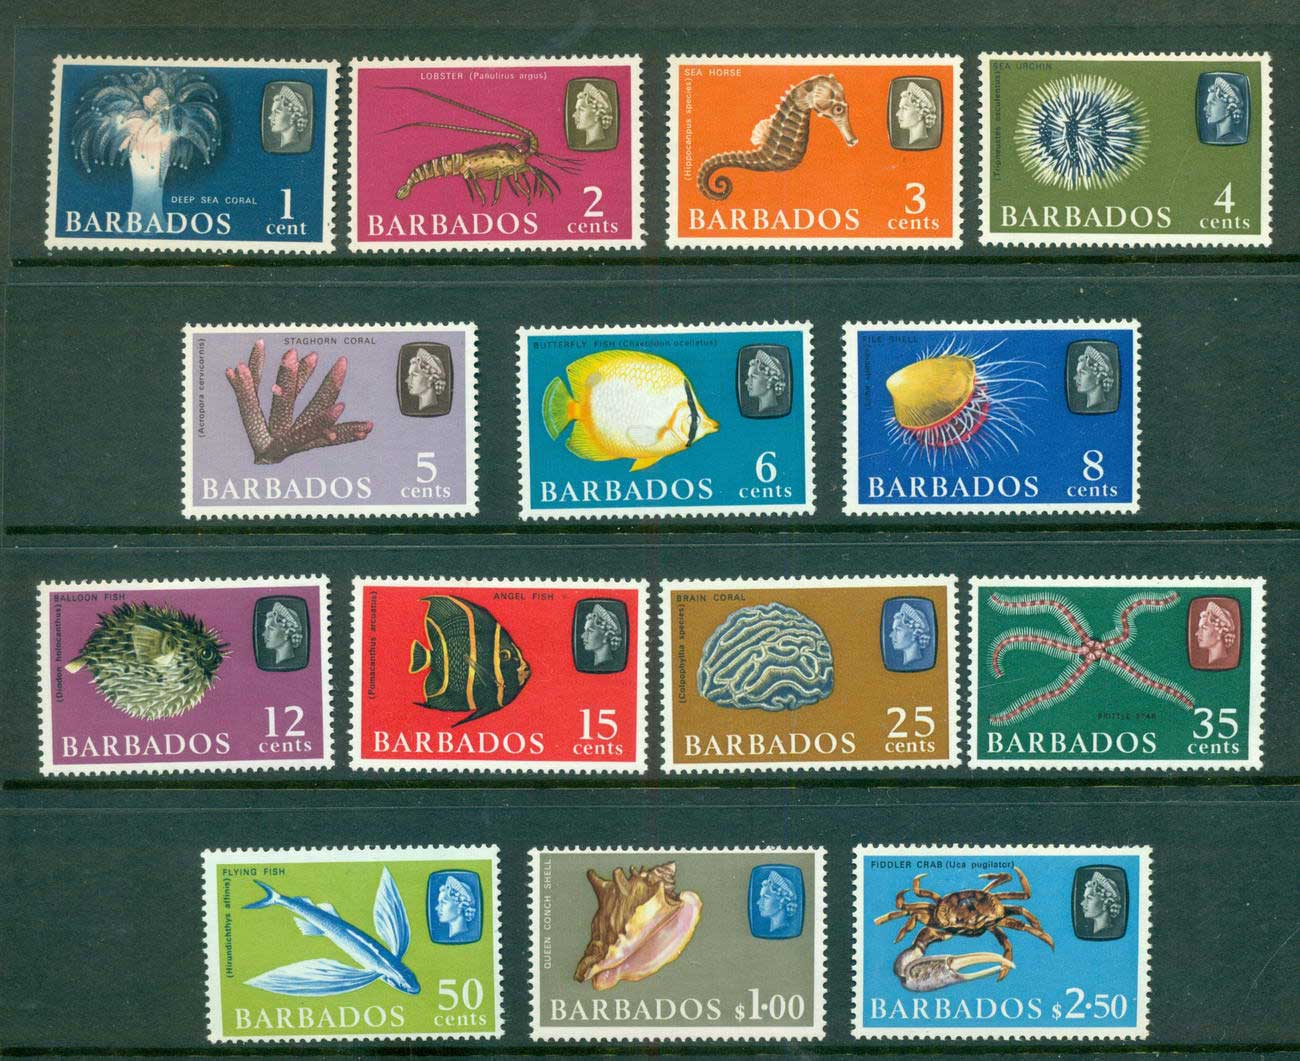 Barbados 1965 Fish Defins Wmk Upright MLH lot55059